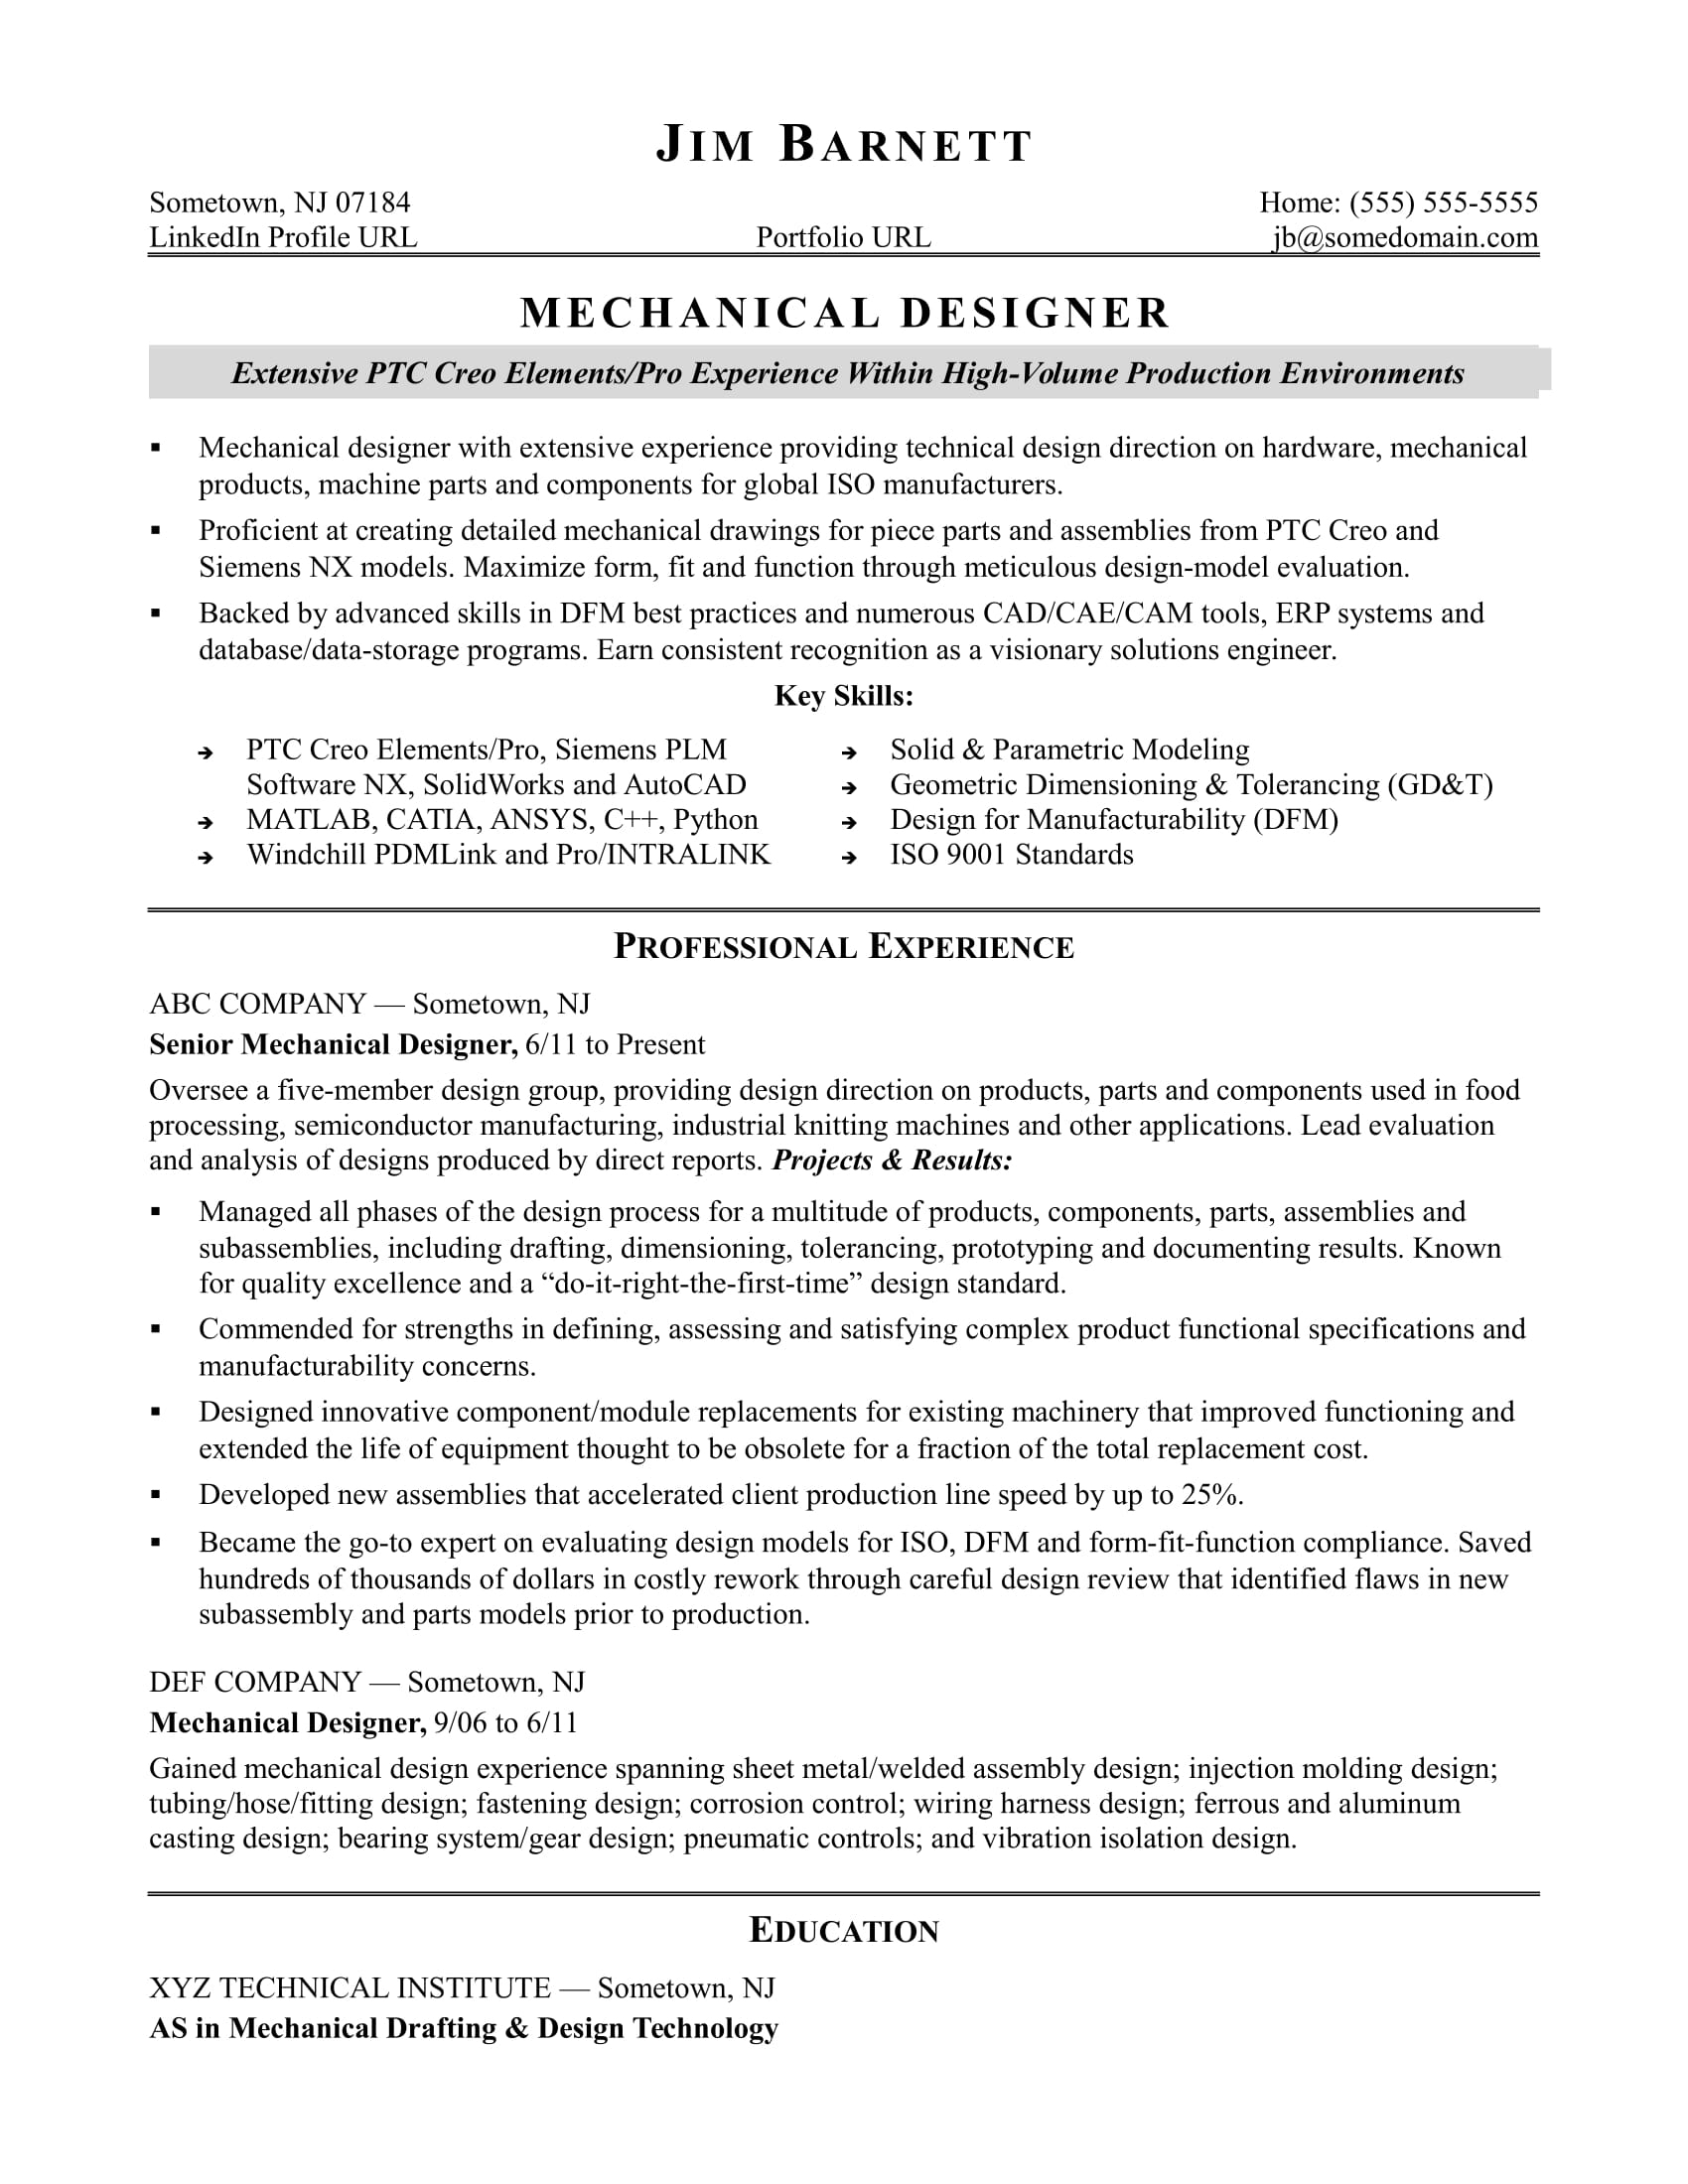 Mechanical Engineering Student Resume - Sample Resume for An Experienced Mechanical Designer